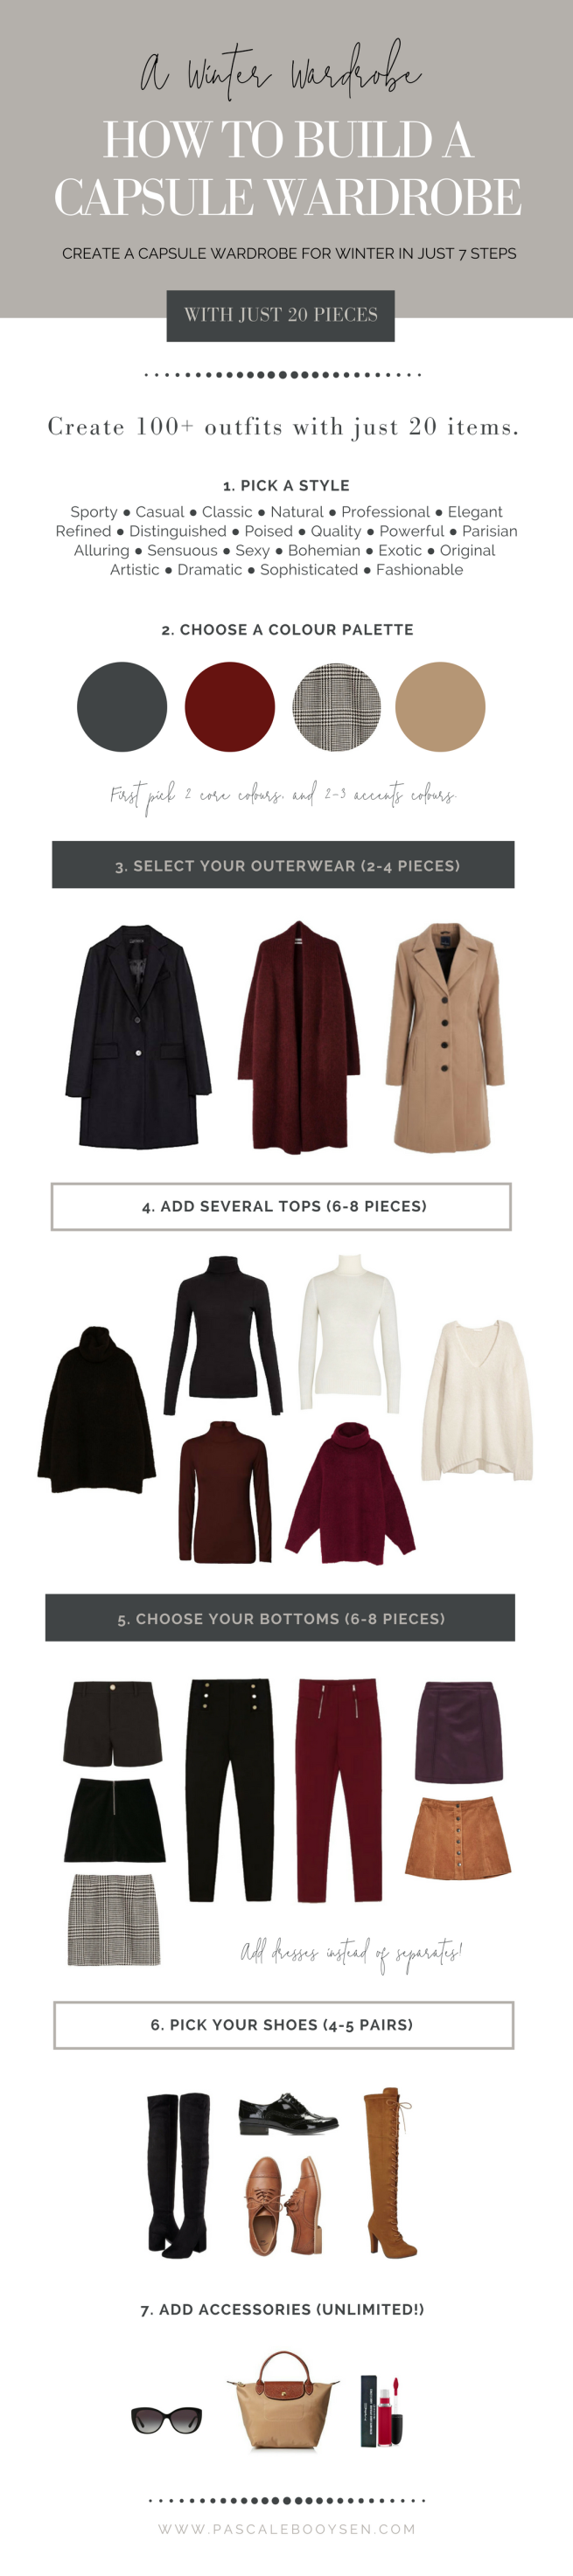 Pascale Booysen | How to Build a Winter Capsule Wardrobe